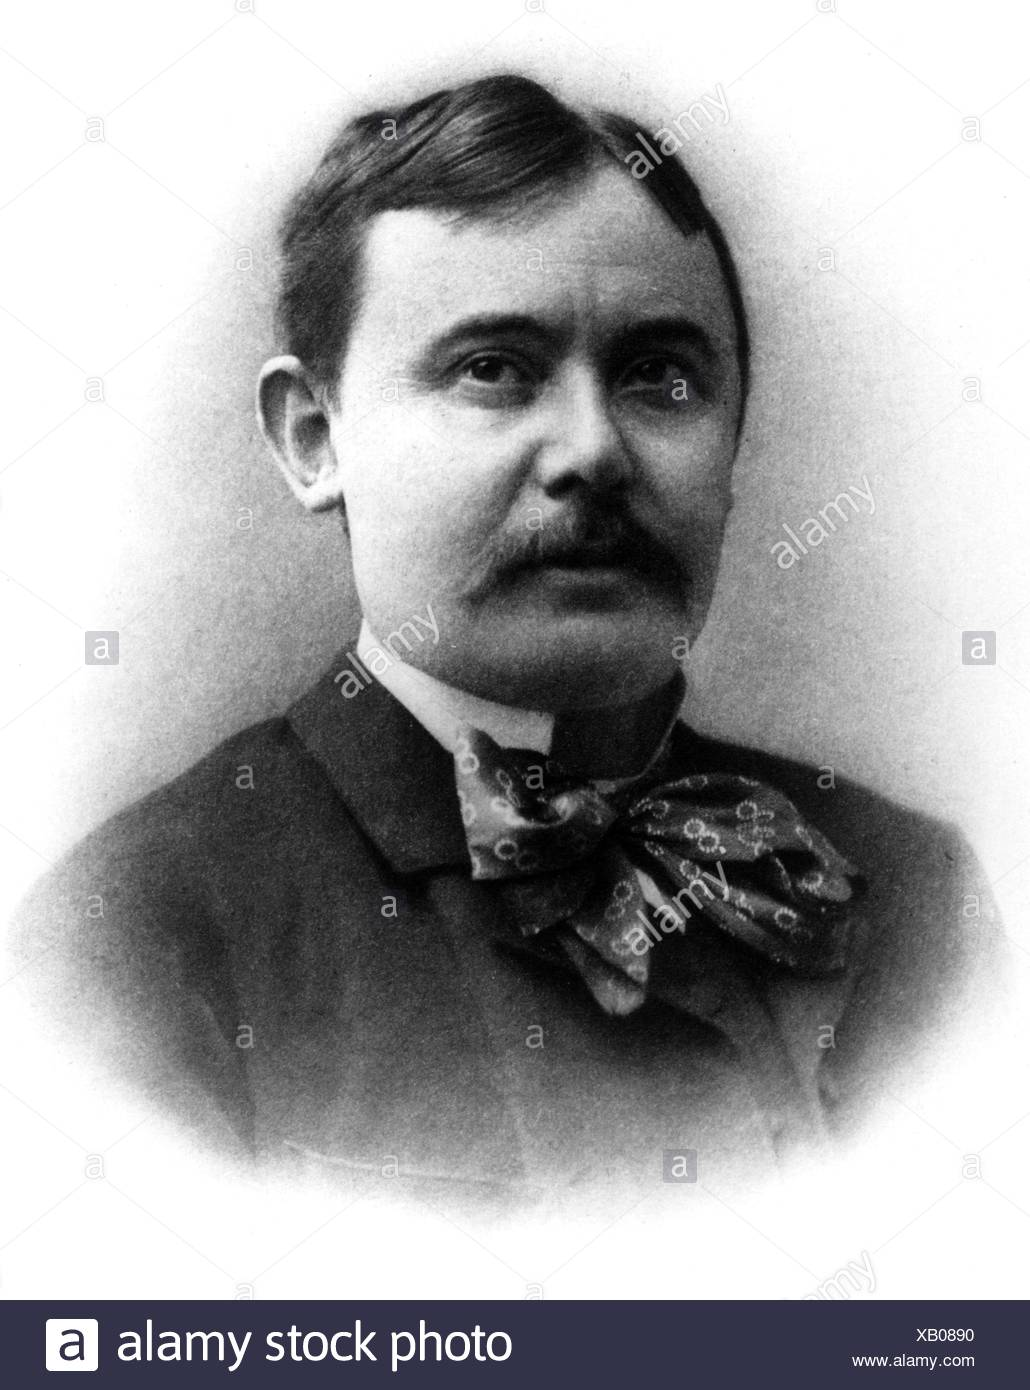 Mikszath, Kalman, 16.1.1847 - 28.5.1910, Hungarian author / writer, portrait, photograph, 1904, Additional-Rights-Clearances-NA - Stock Image